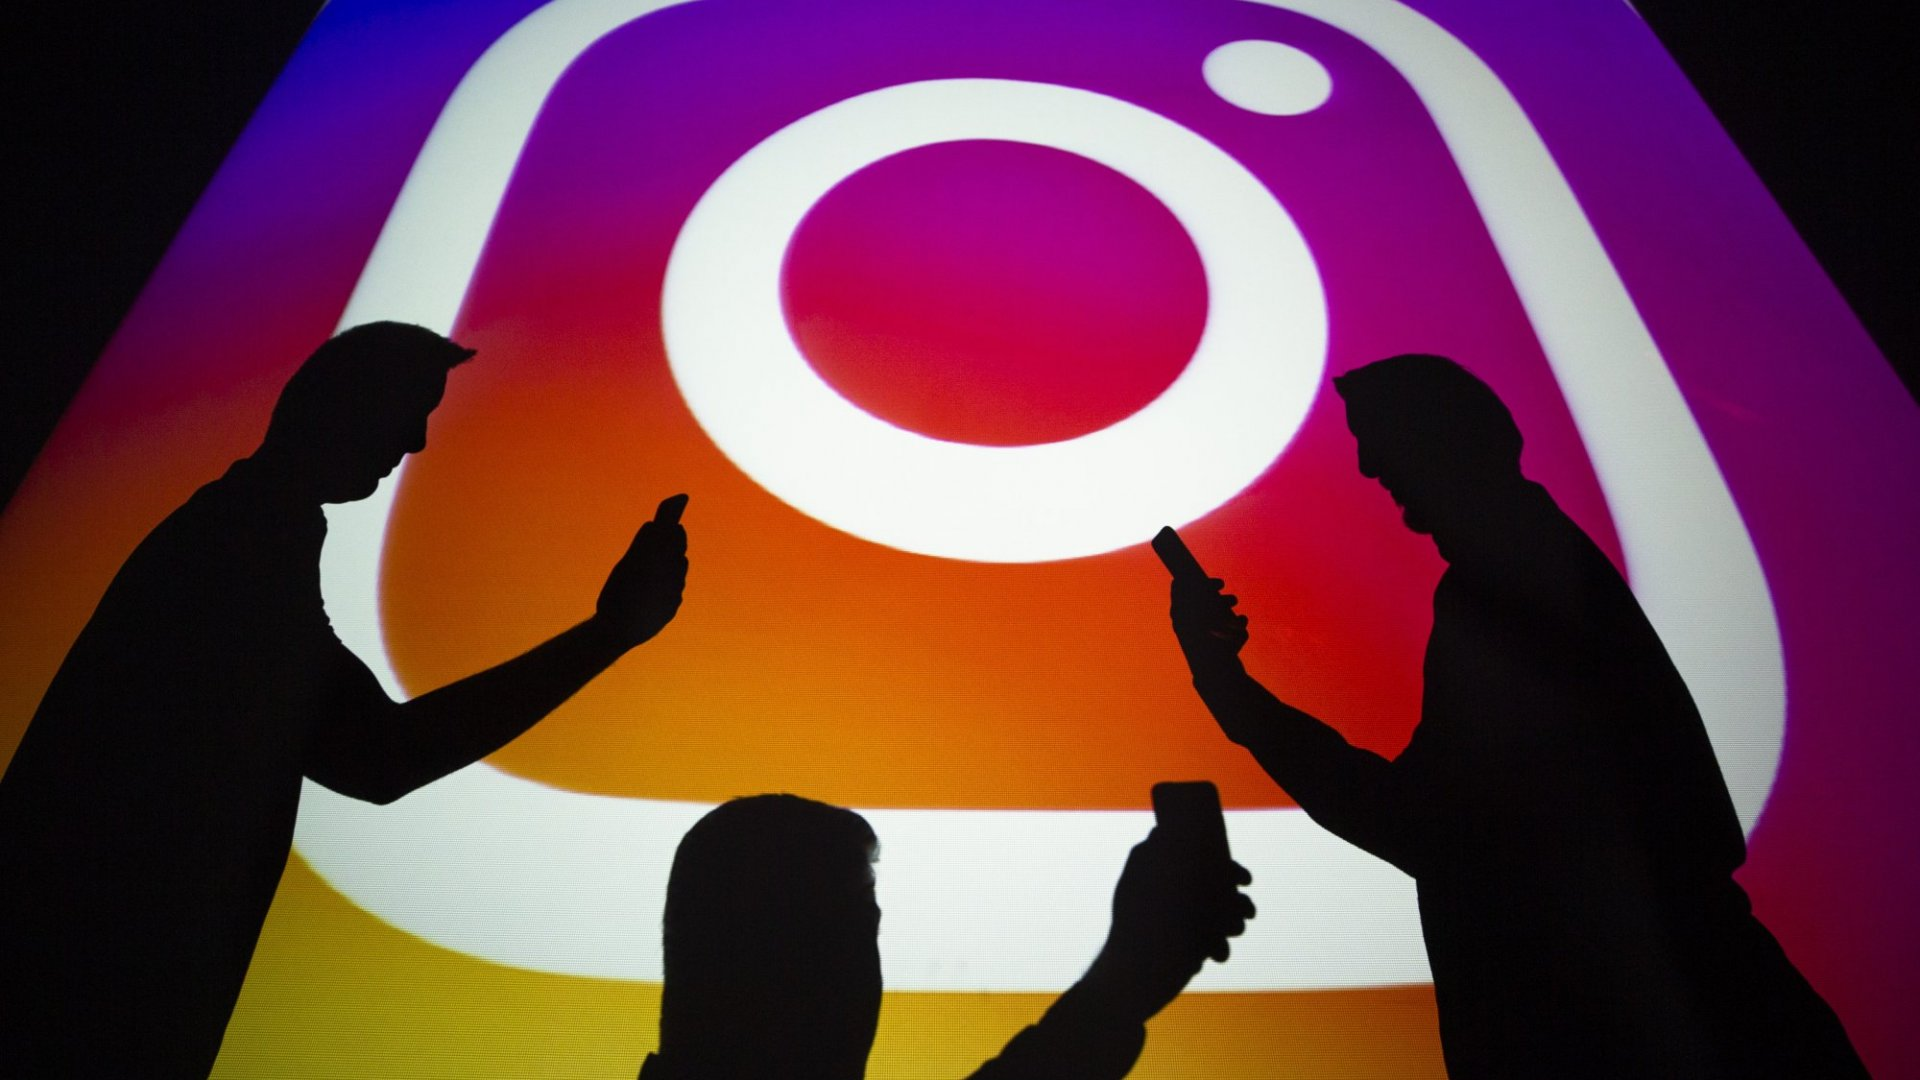 When Instagram was launched in 2011, it was presented as a primarily visual platform. The creators probably never imagined that in under a decade, business owners from Baltimore to Bahrain would be utilizing Instagram as a digital storefront.